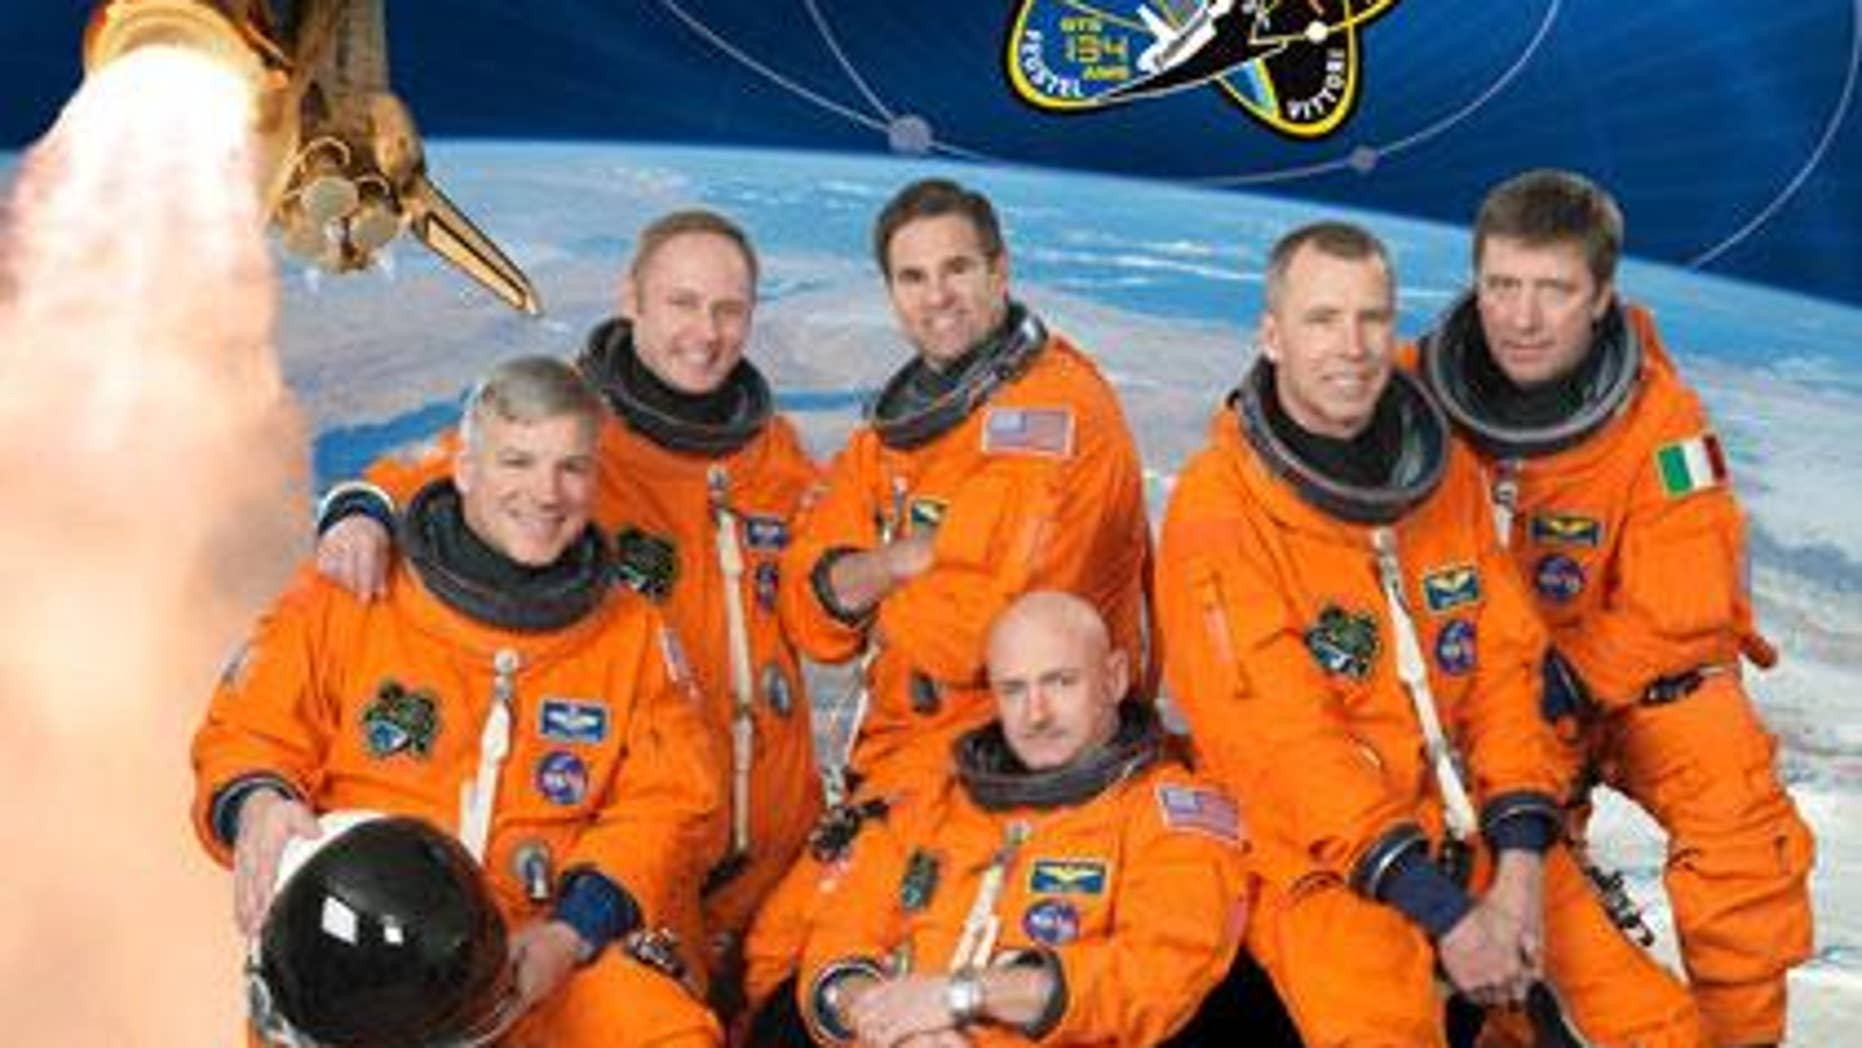 Mark Kelly, bottom center, is mission commander of Space Shuttle Endeavour's final mission and husband of wounded Arizona congresswoman Gabrielle Giffords. (Image courtesy NASA)